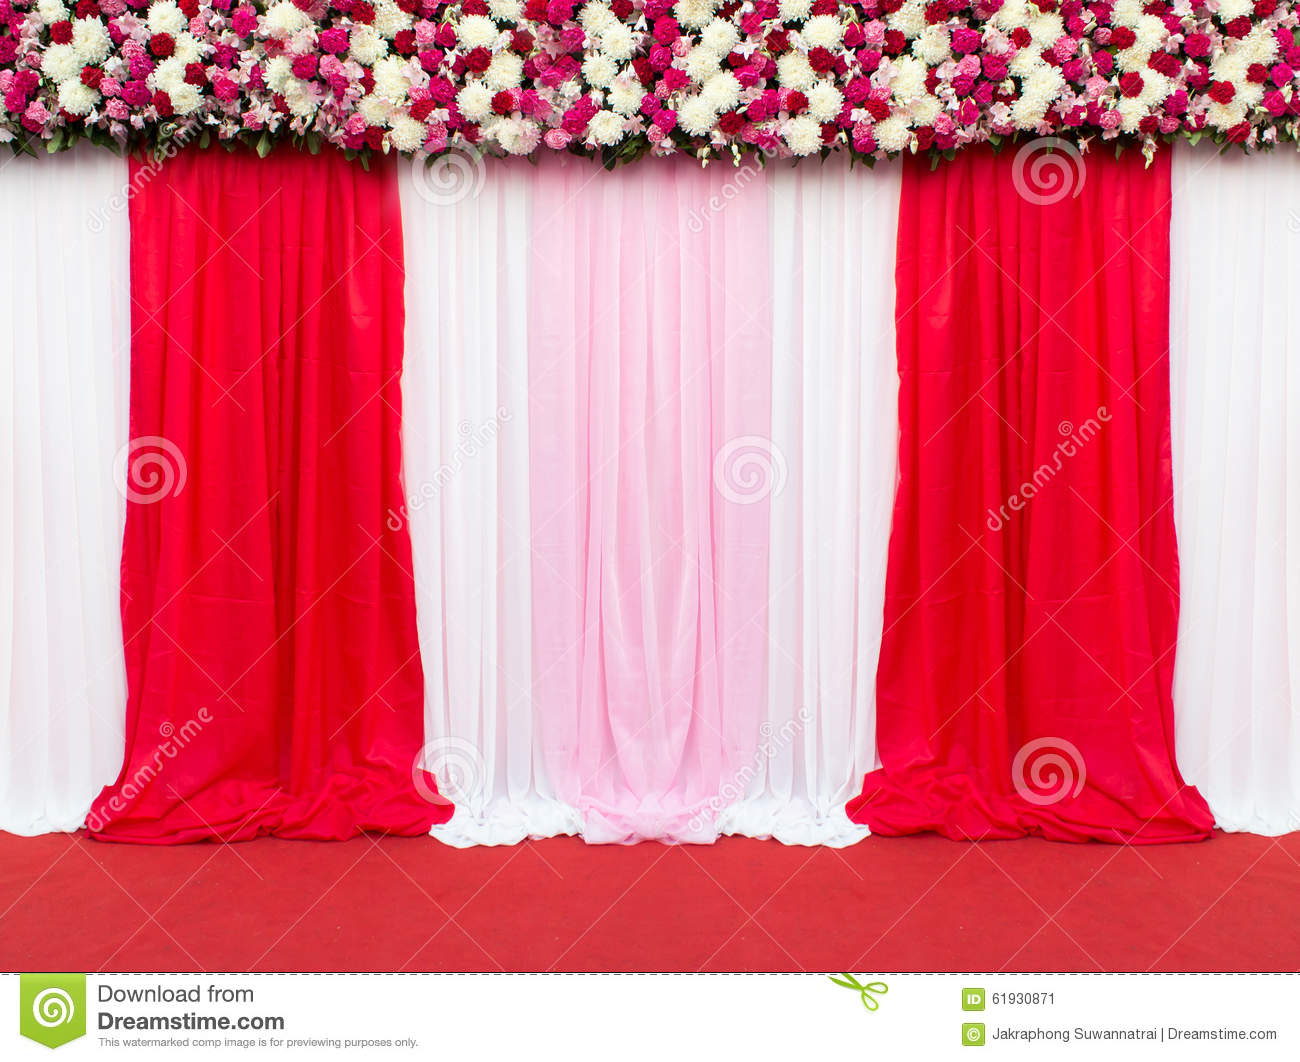 Stage Decoration Wedding Stage Decoration Stock Images Download 1 305 Royalty